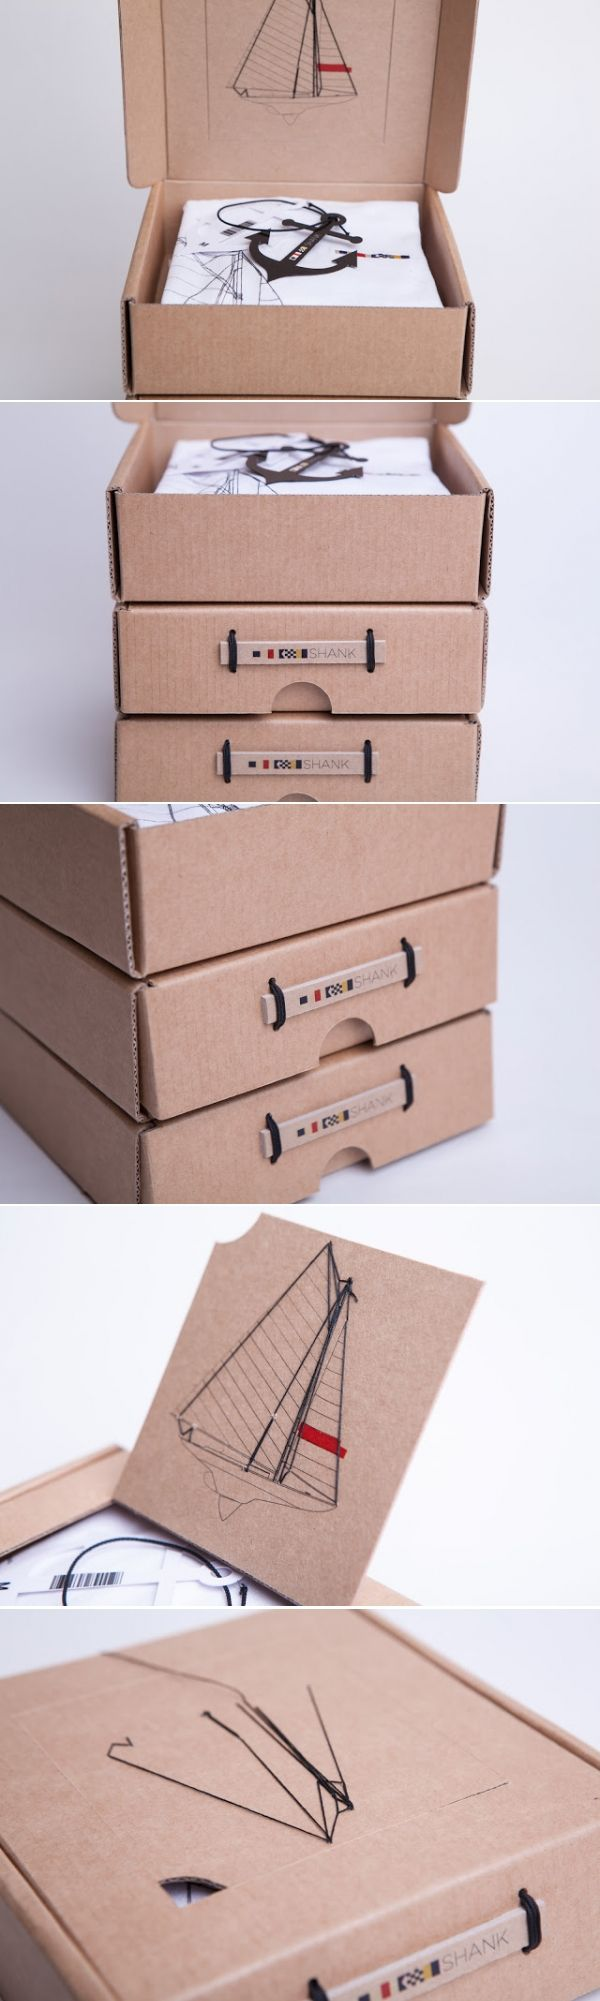 Shank t-shirt design and packaging